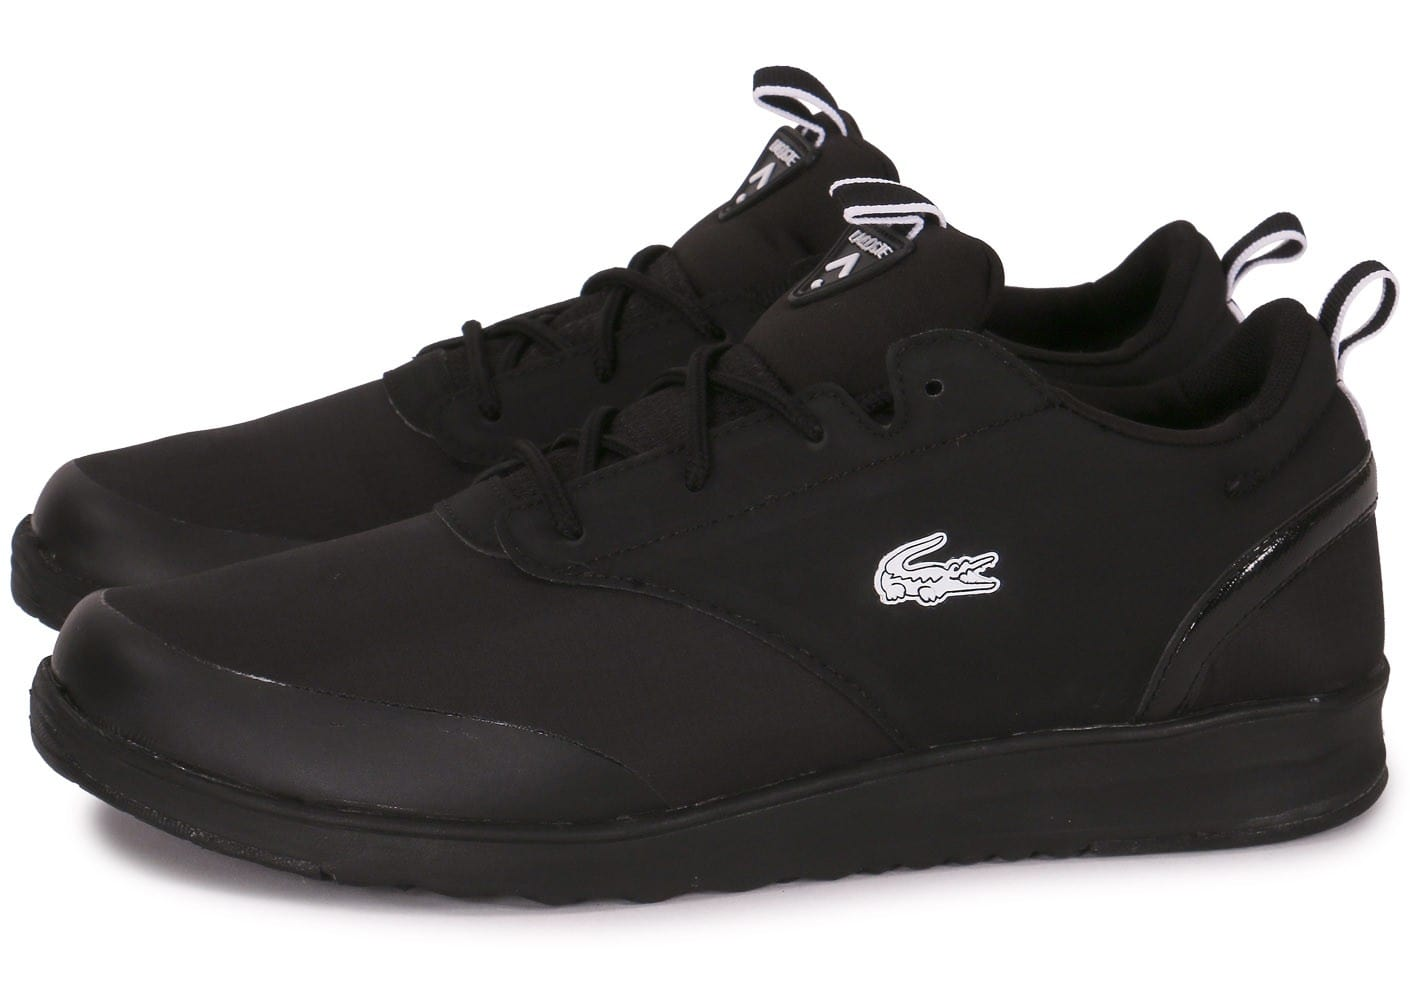 b8d344f3259 chaussure lacoste light homme